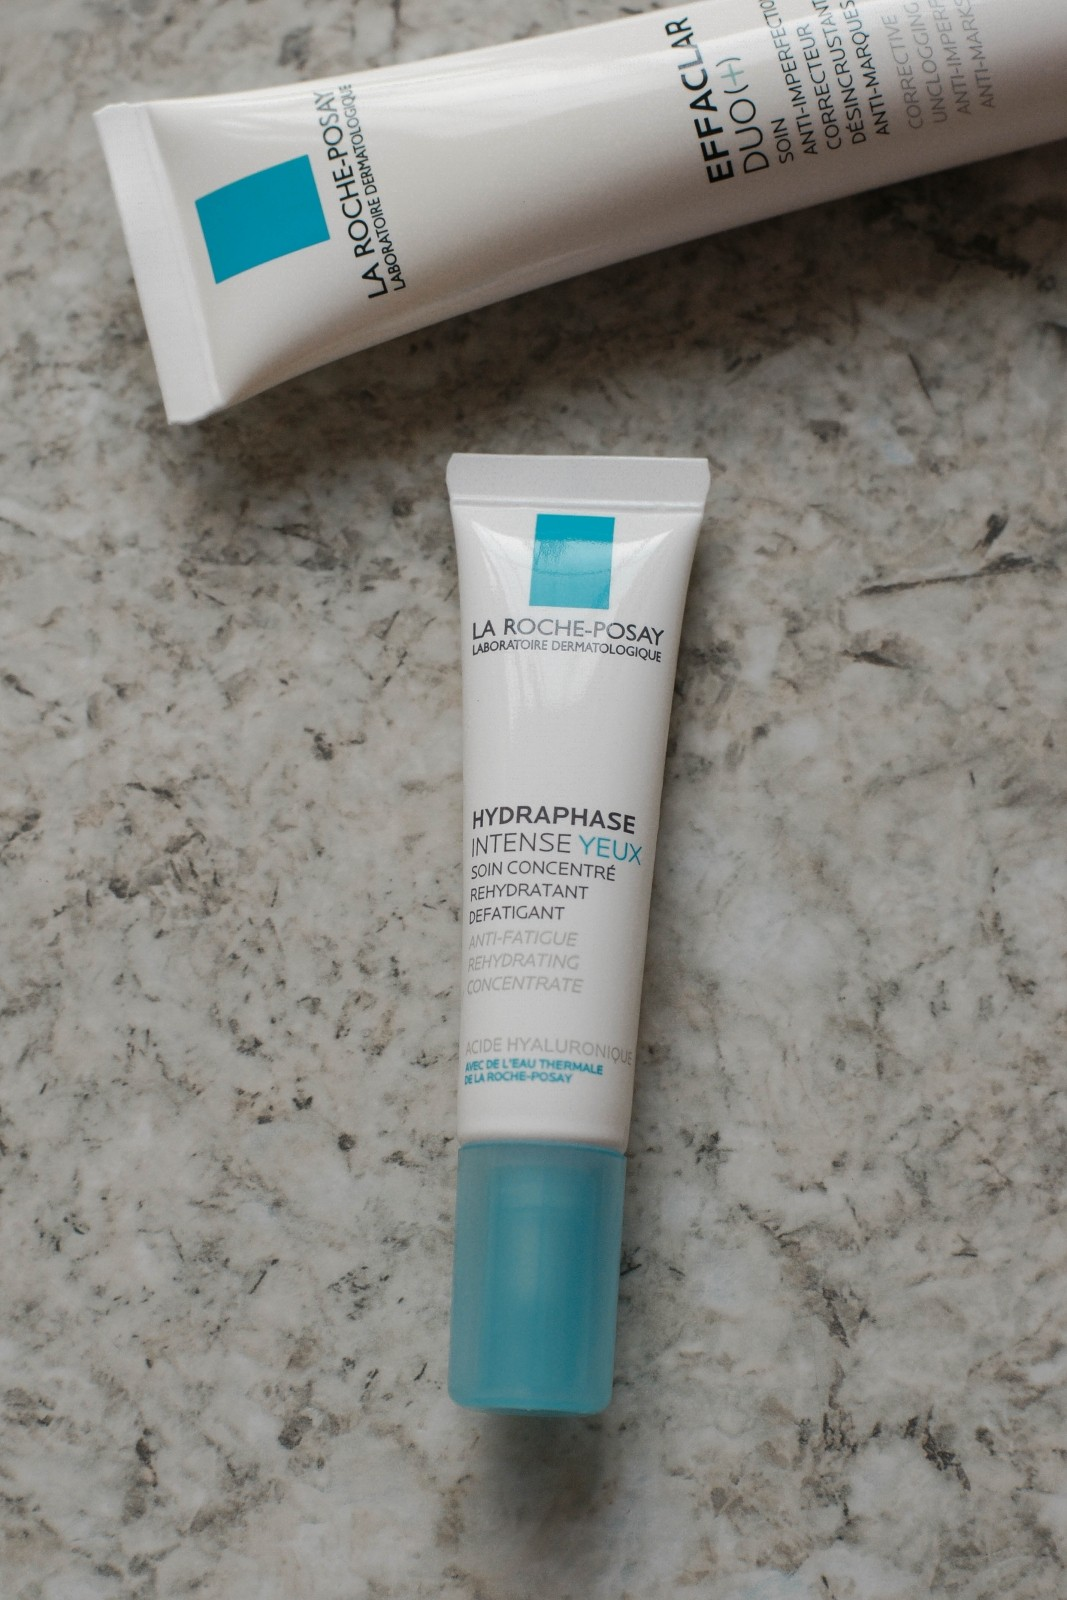 La Roche-Posay Effaclar Duo Plus & Avon Anew Products Review-10